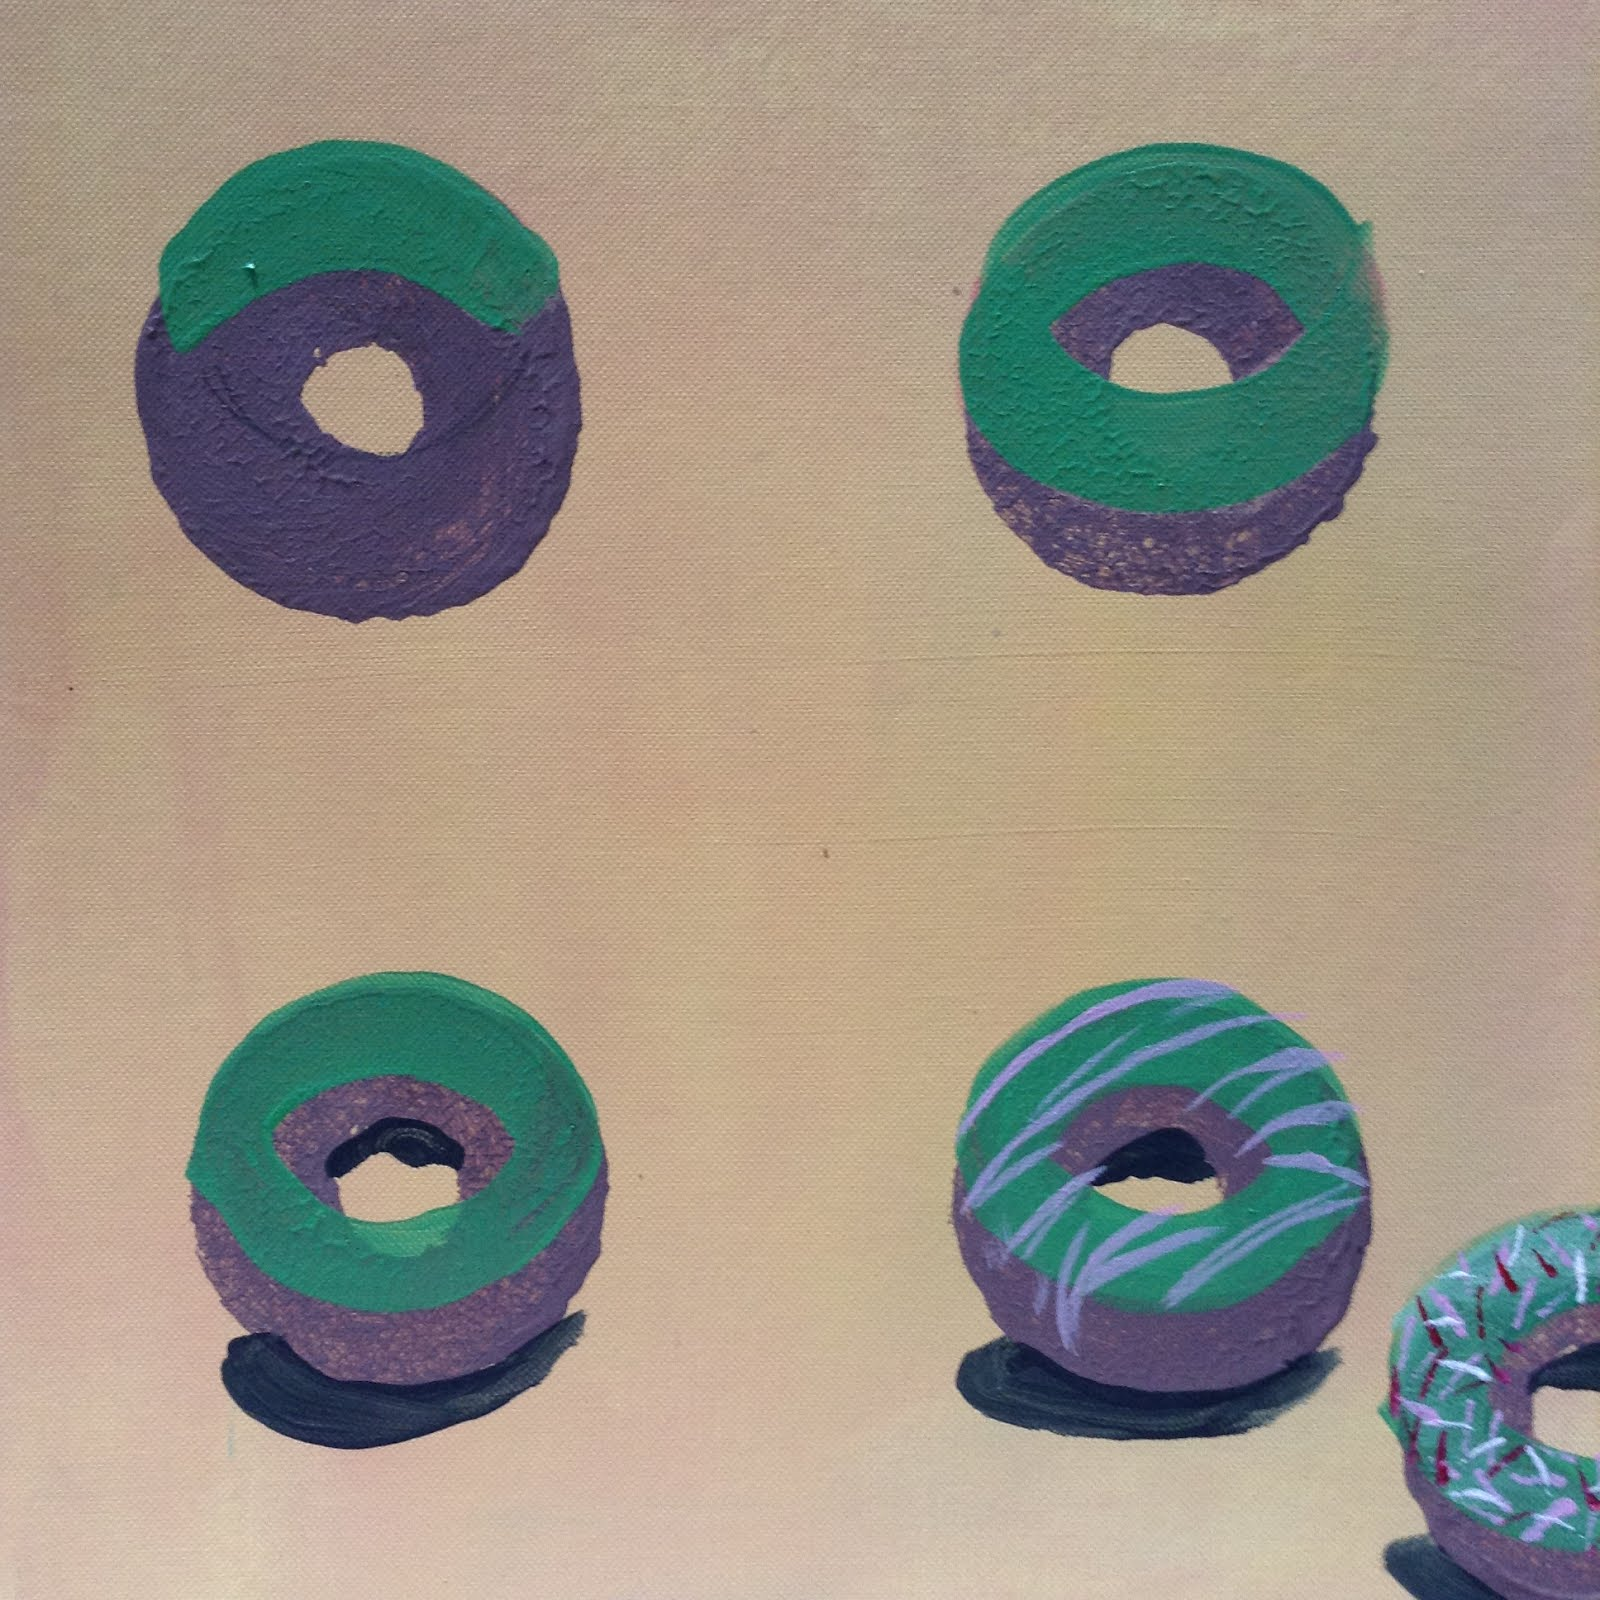 A weekend with wendell lesson plan - Again I Let The Donuts Dry Before Adding The Icing And Shadow Onto The Donuts Use The Image Above Or The Steps On The Lesson Plan To Break This Down For